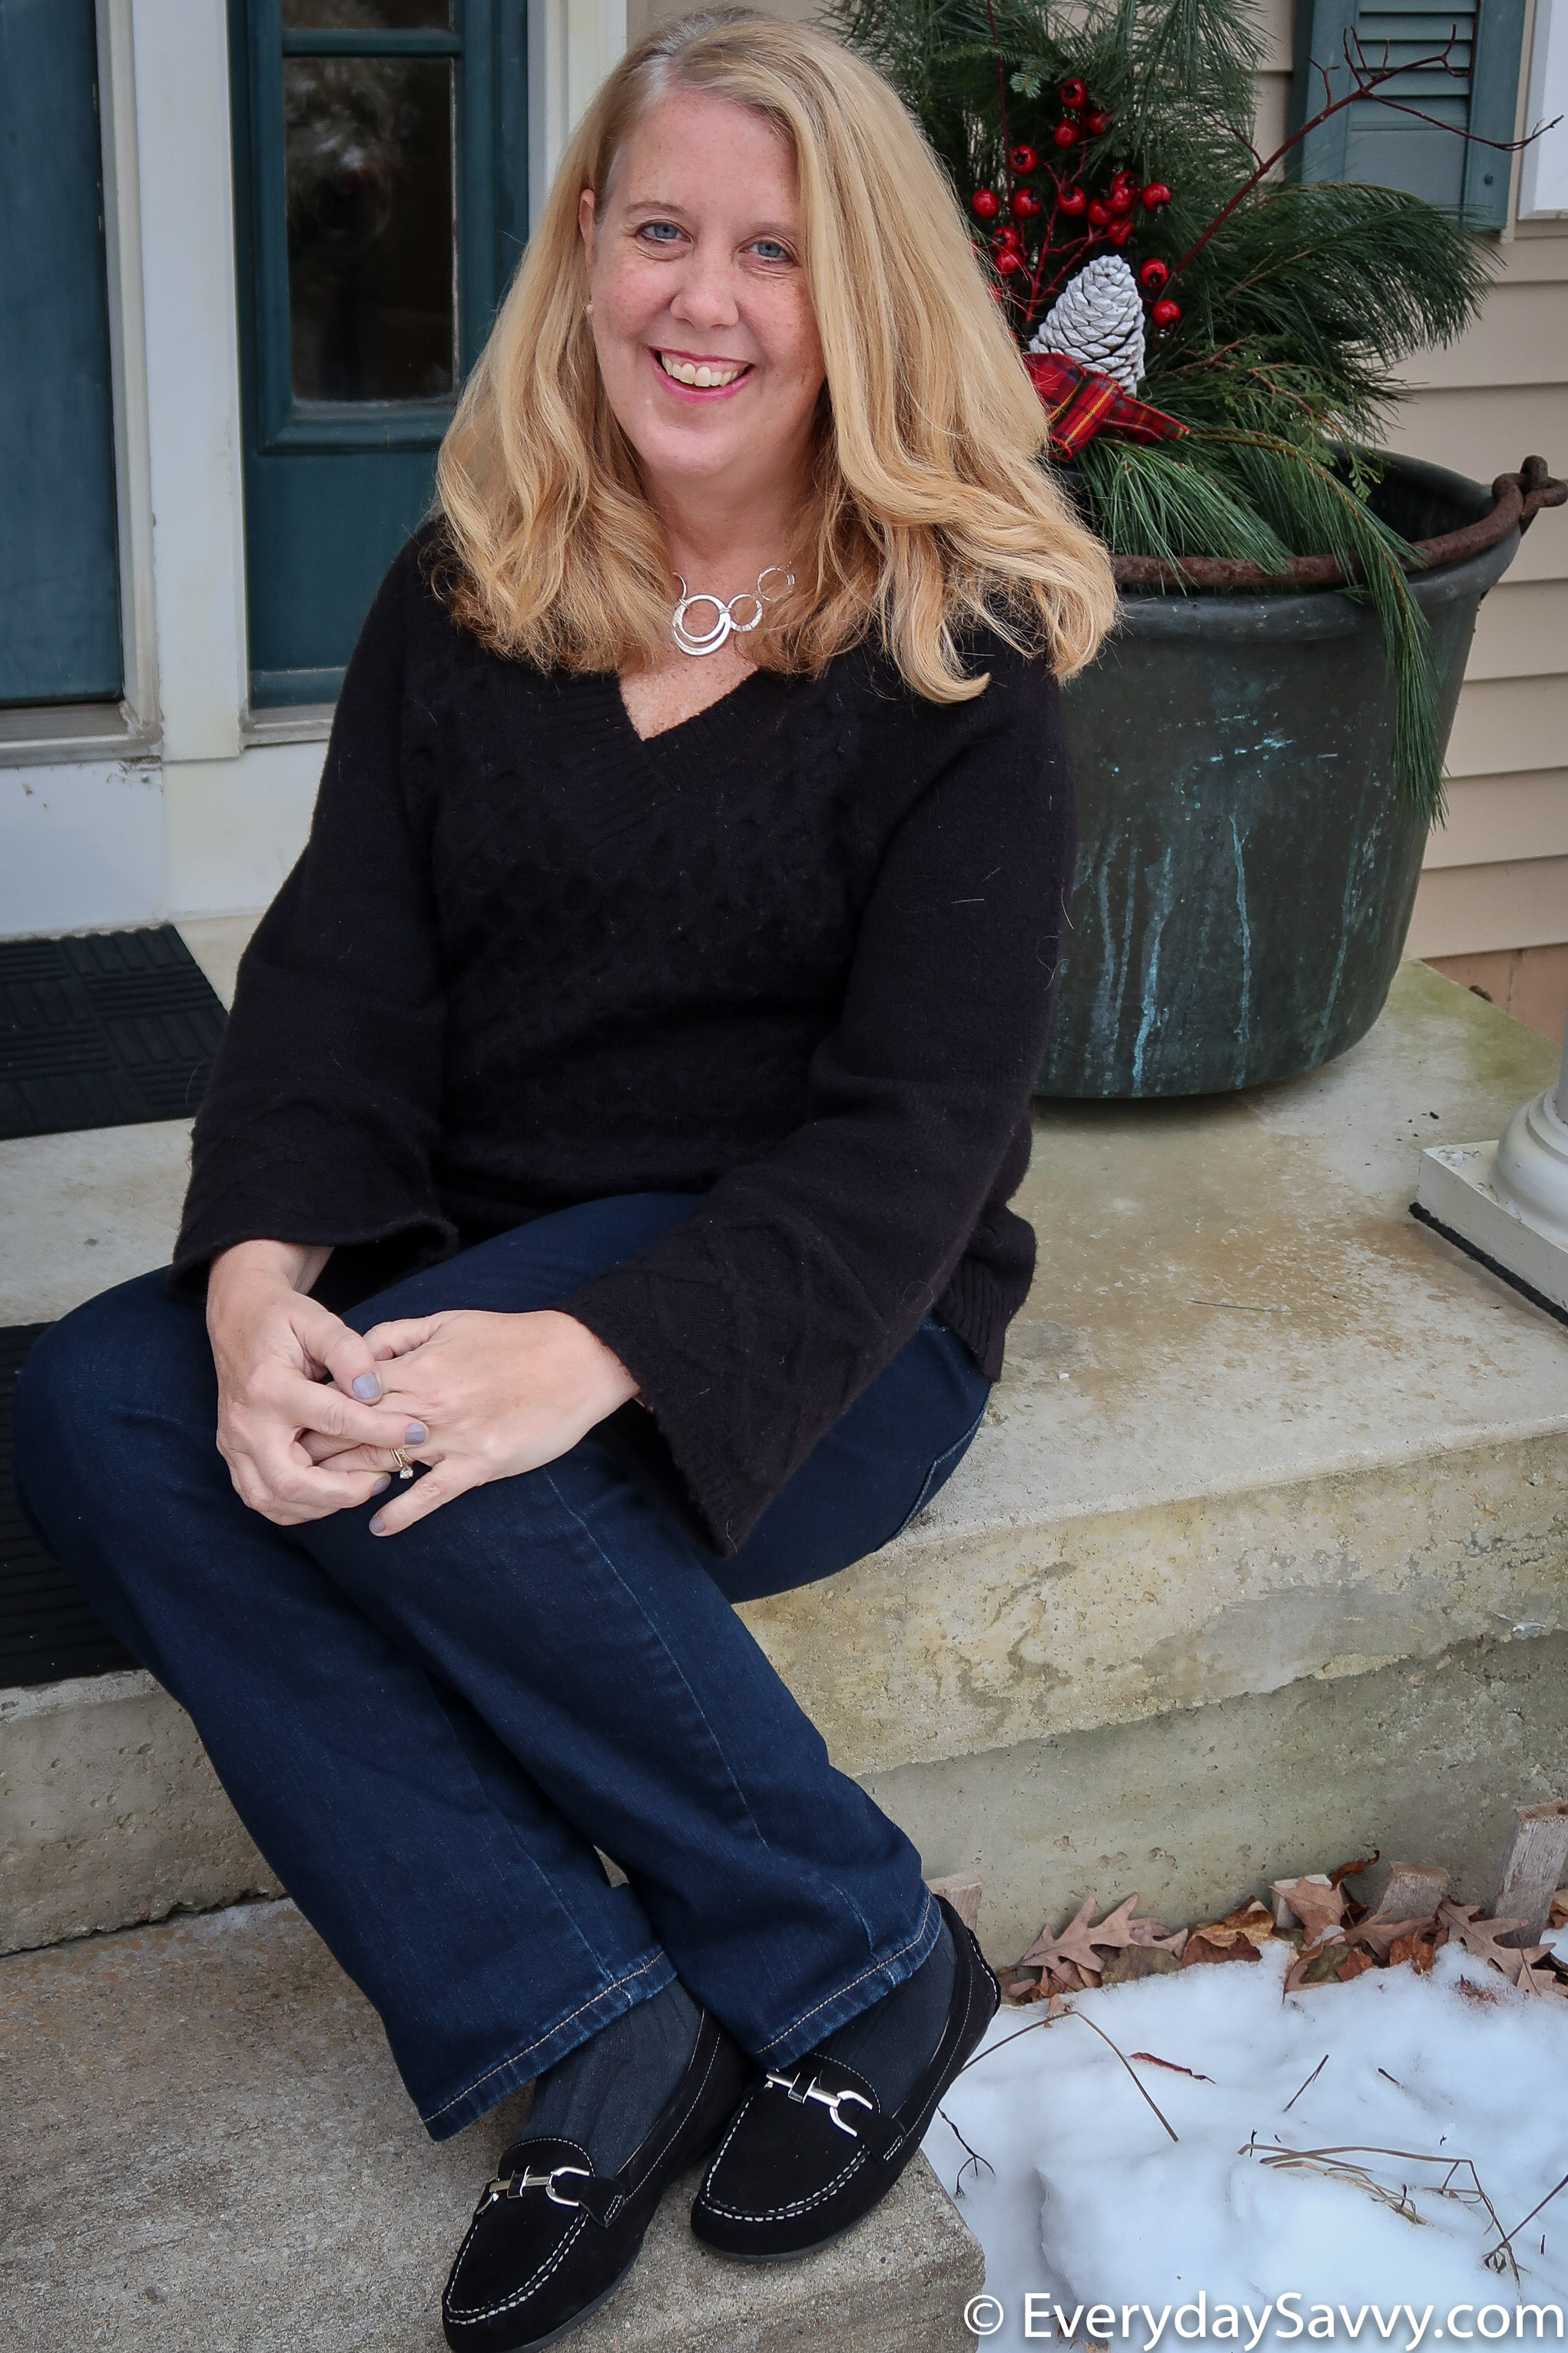 Cute Casual Holiday outfit - black sweater with bell sleeves, jeans and black loafers with silver detail